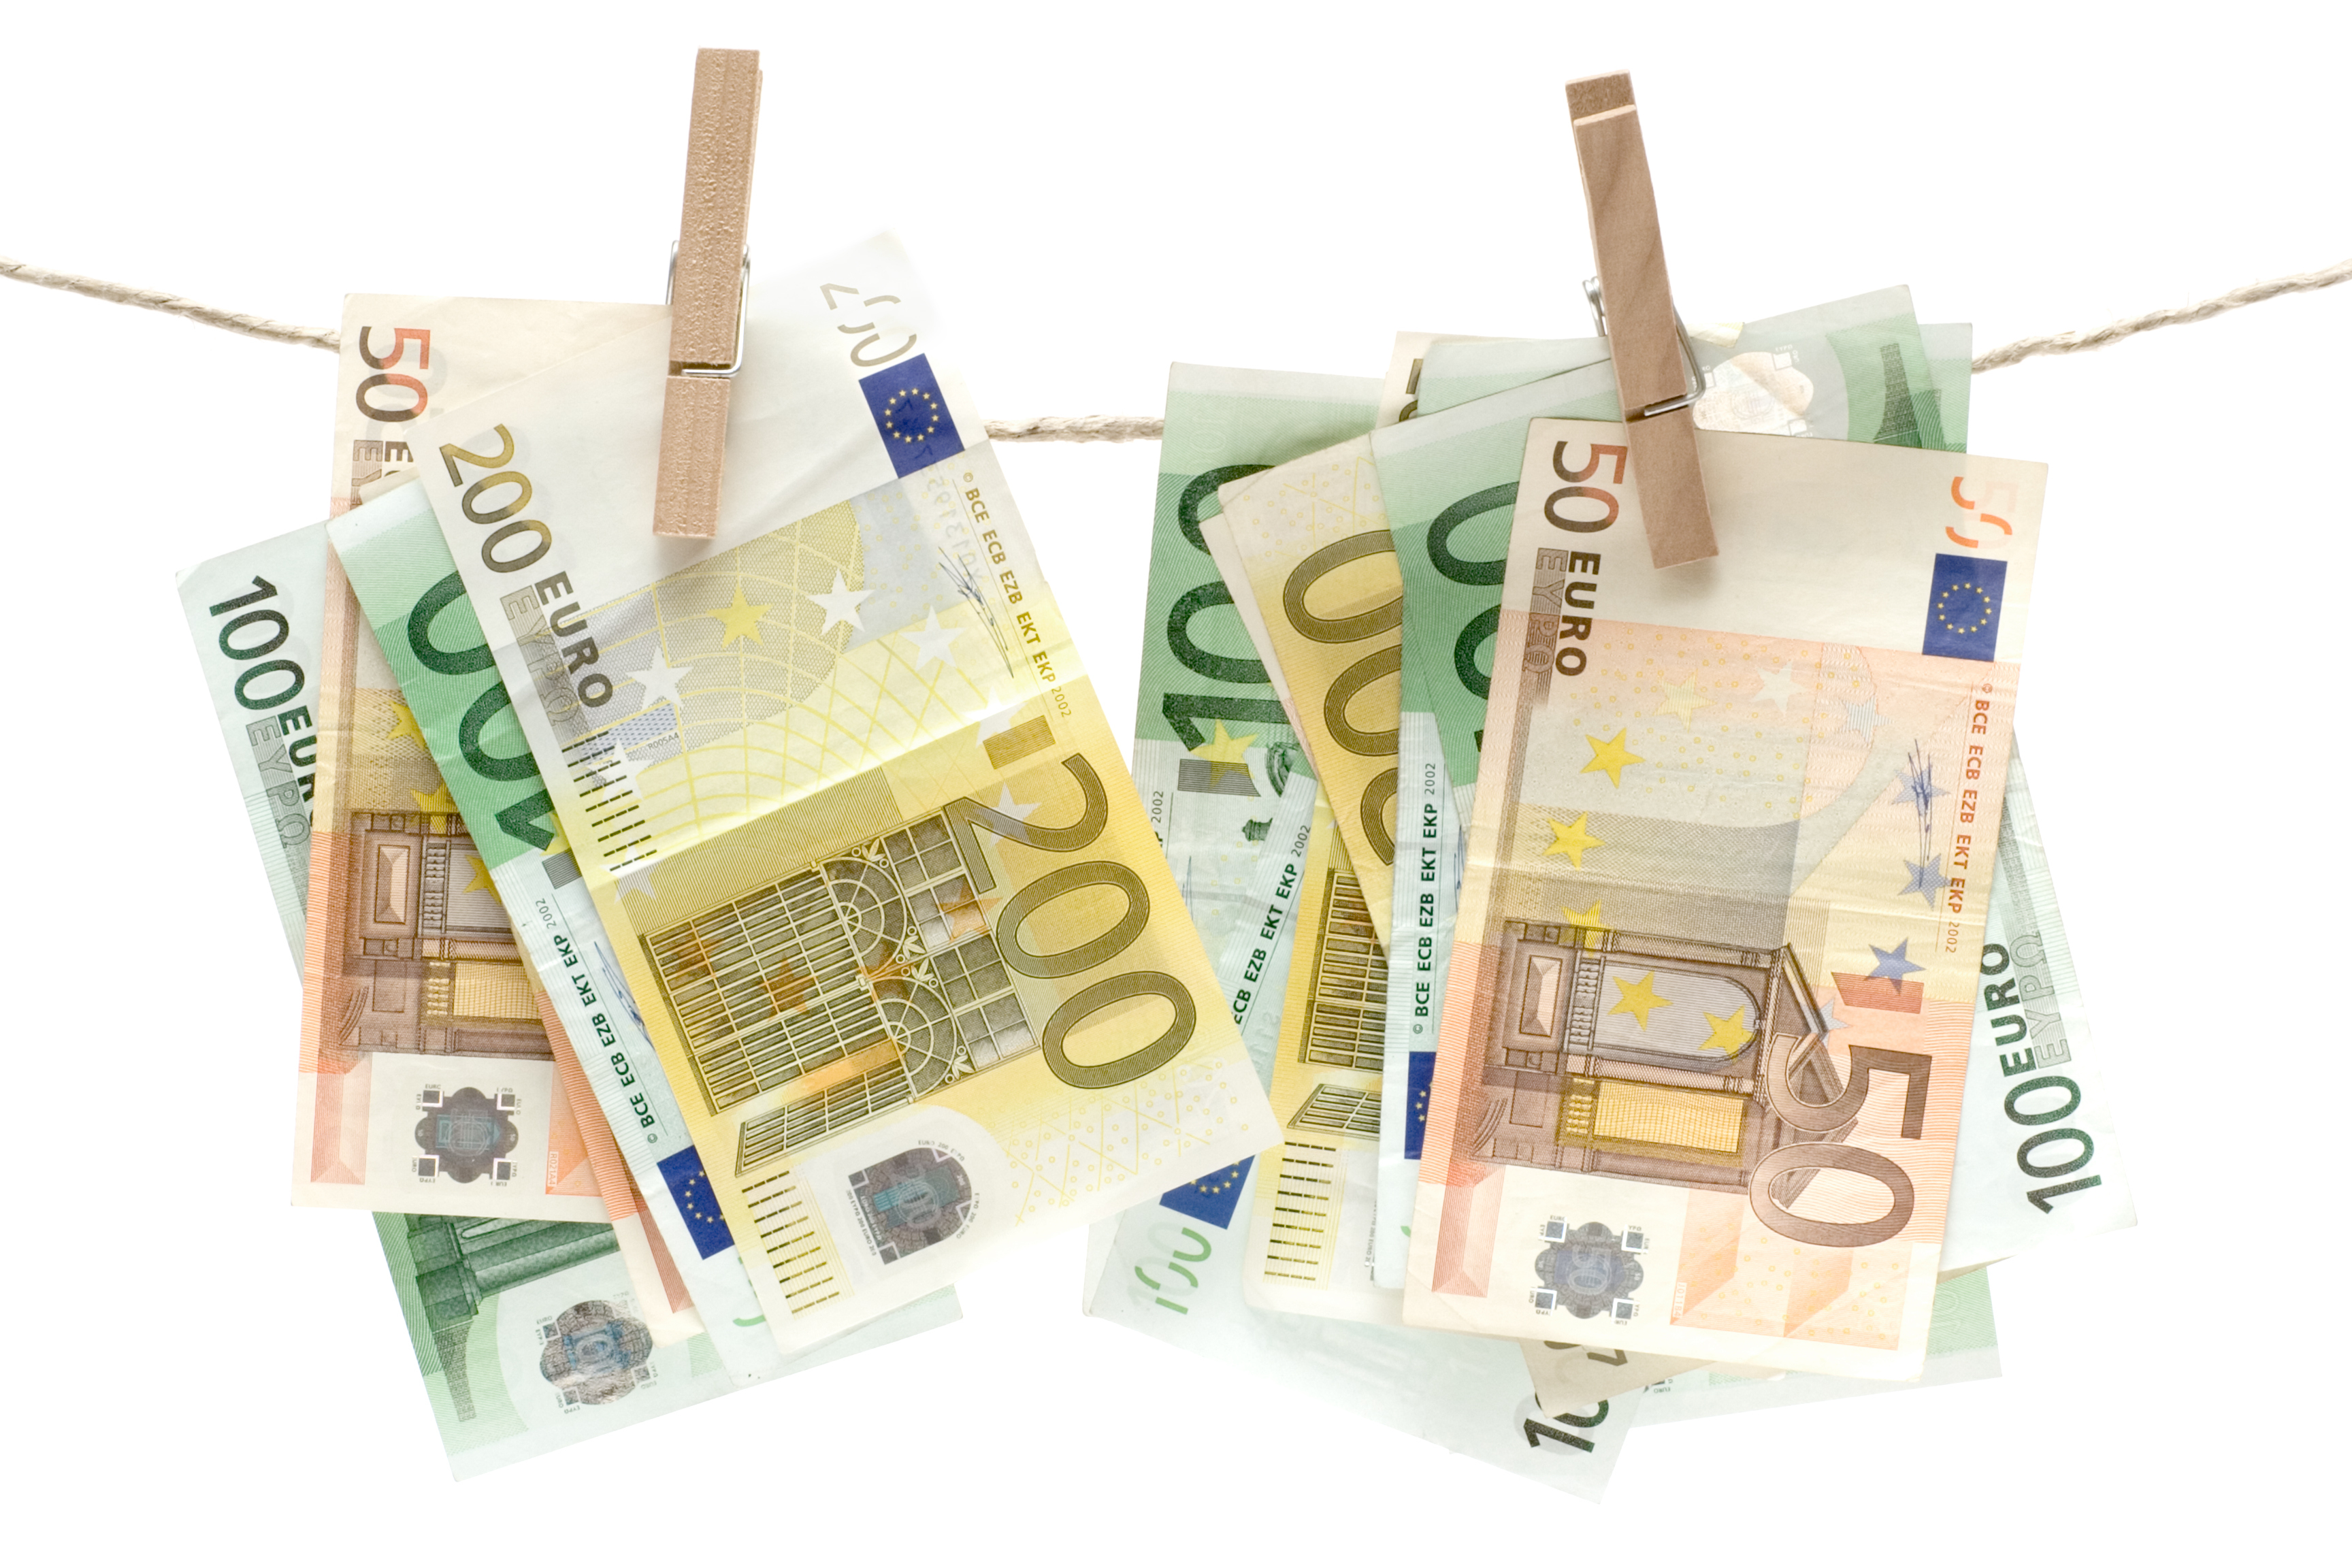 Amendments To The Prevention Of Money Laundering and Funding Of Terrorism Regulation